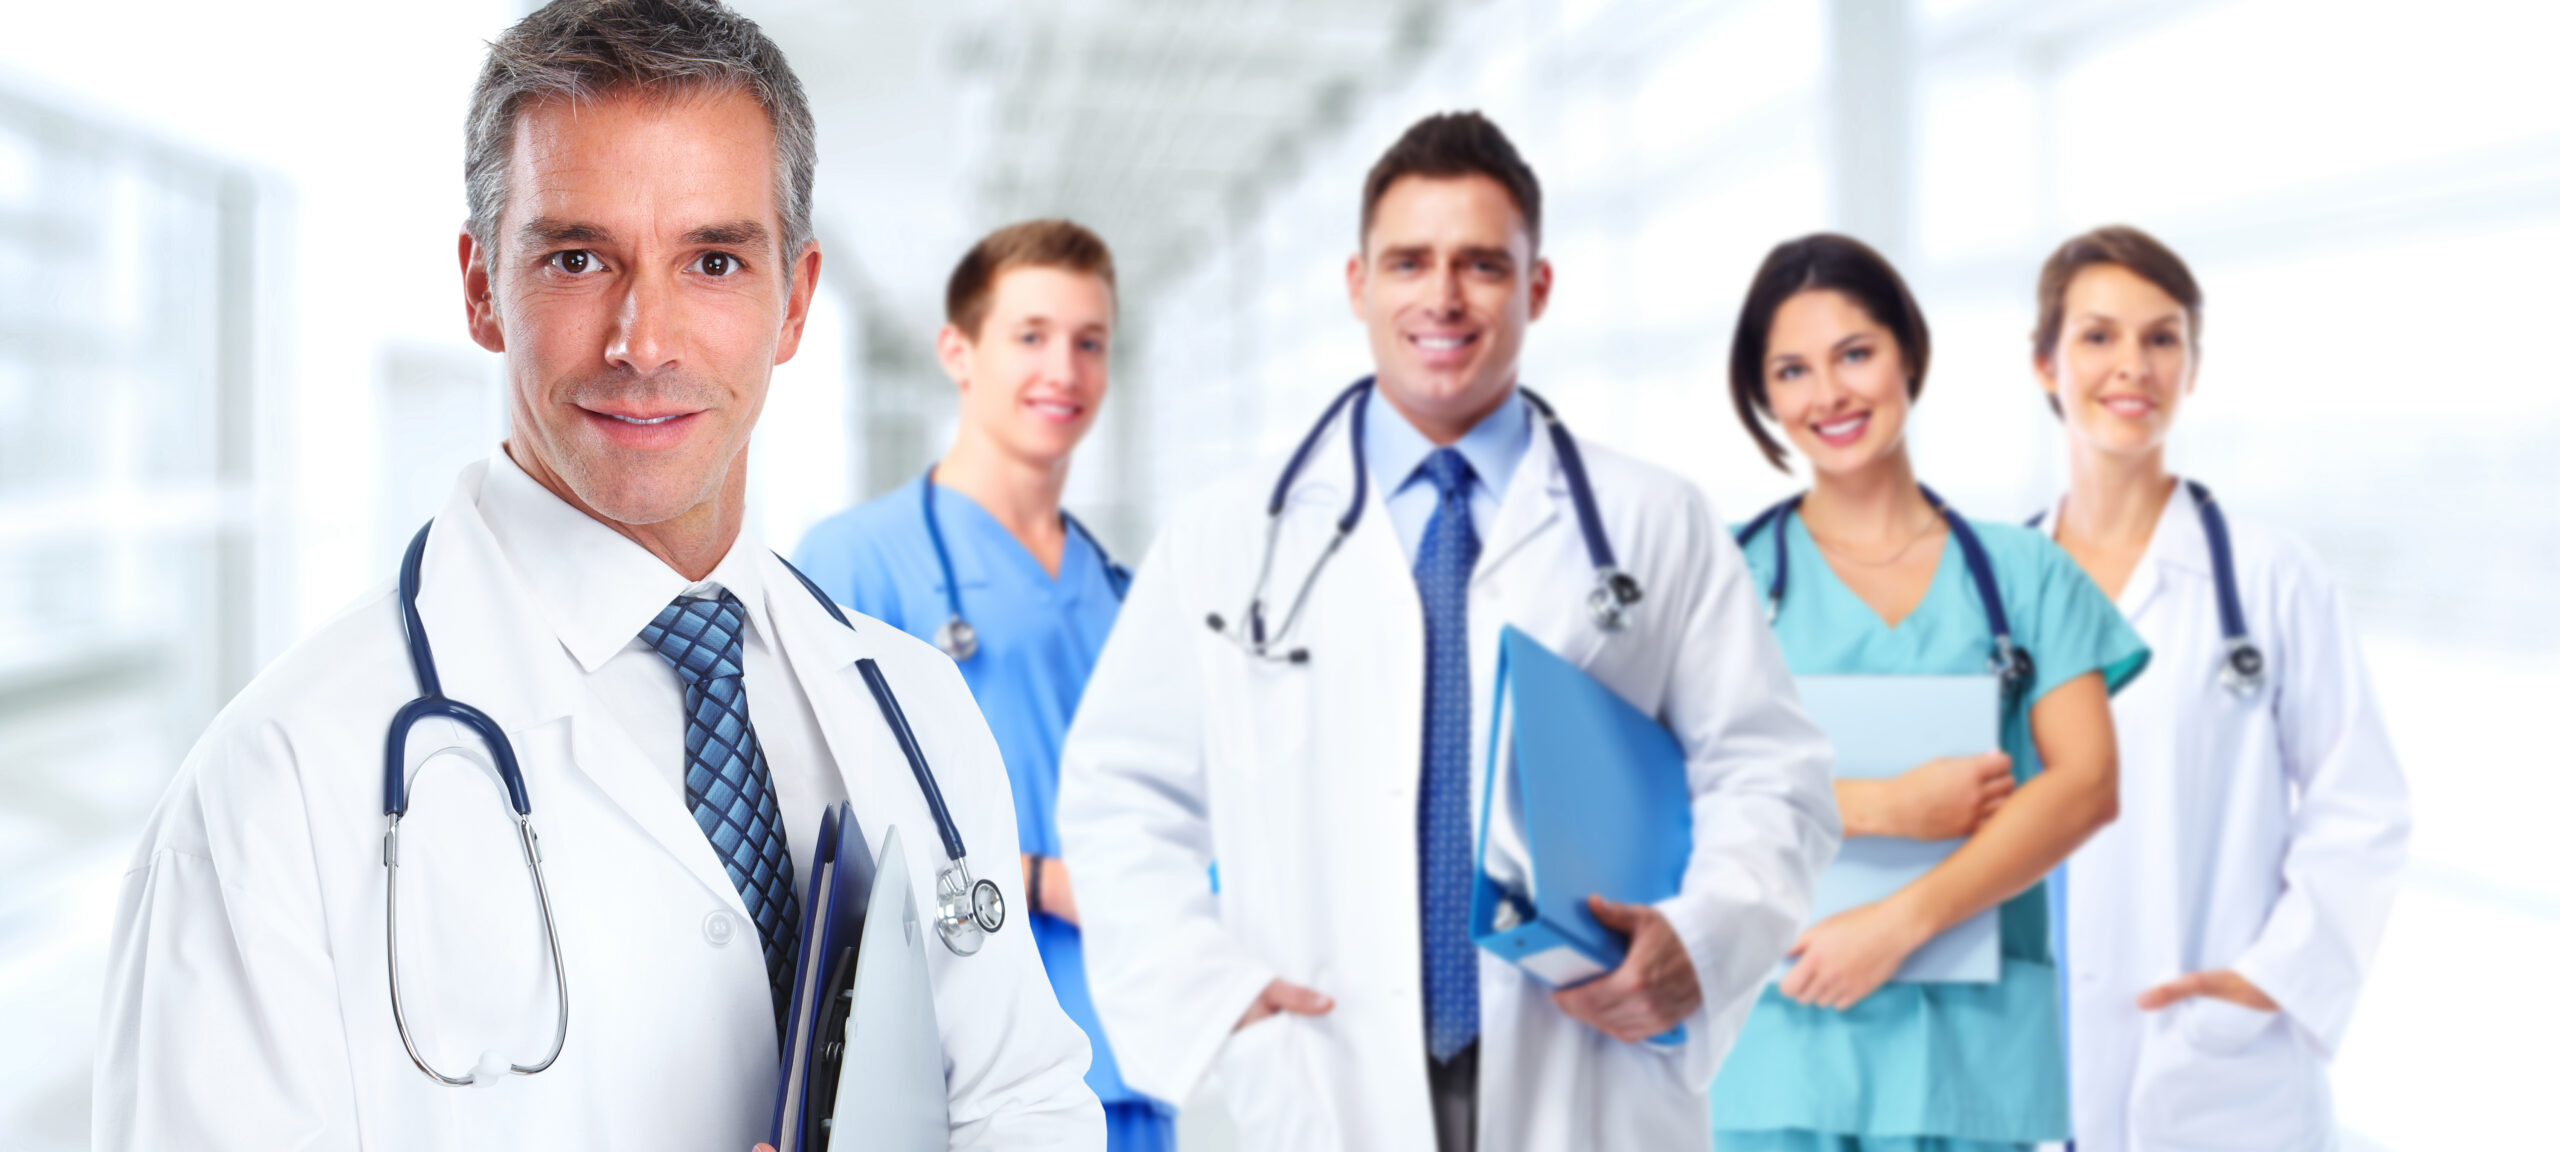 medical search engine optimization and marketing for doctors and medical practices